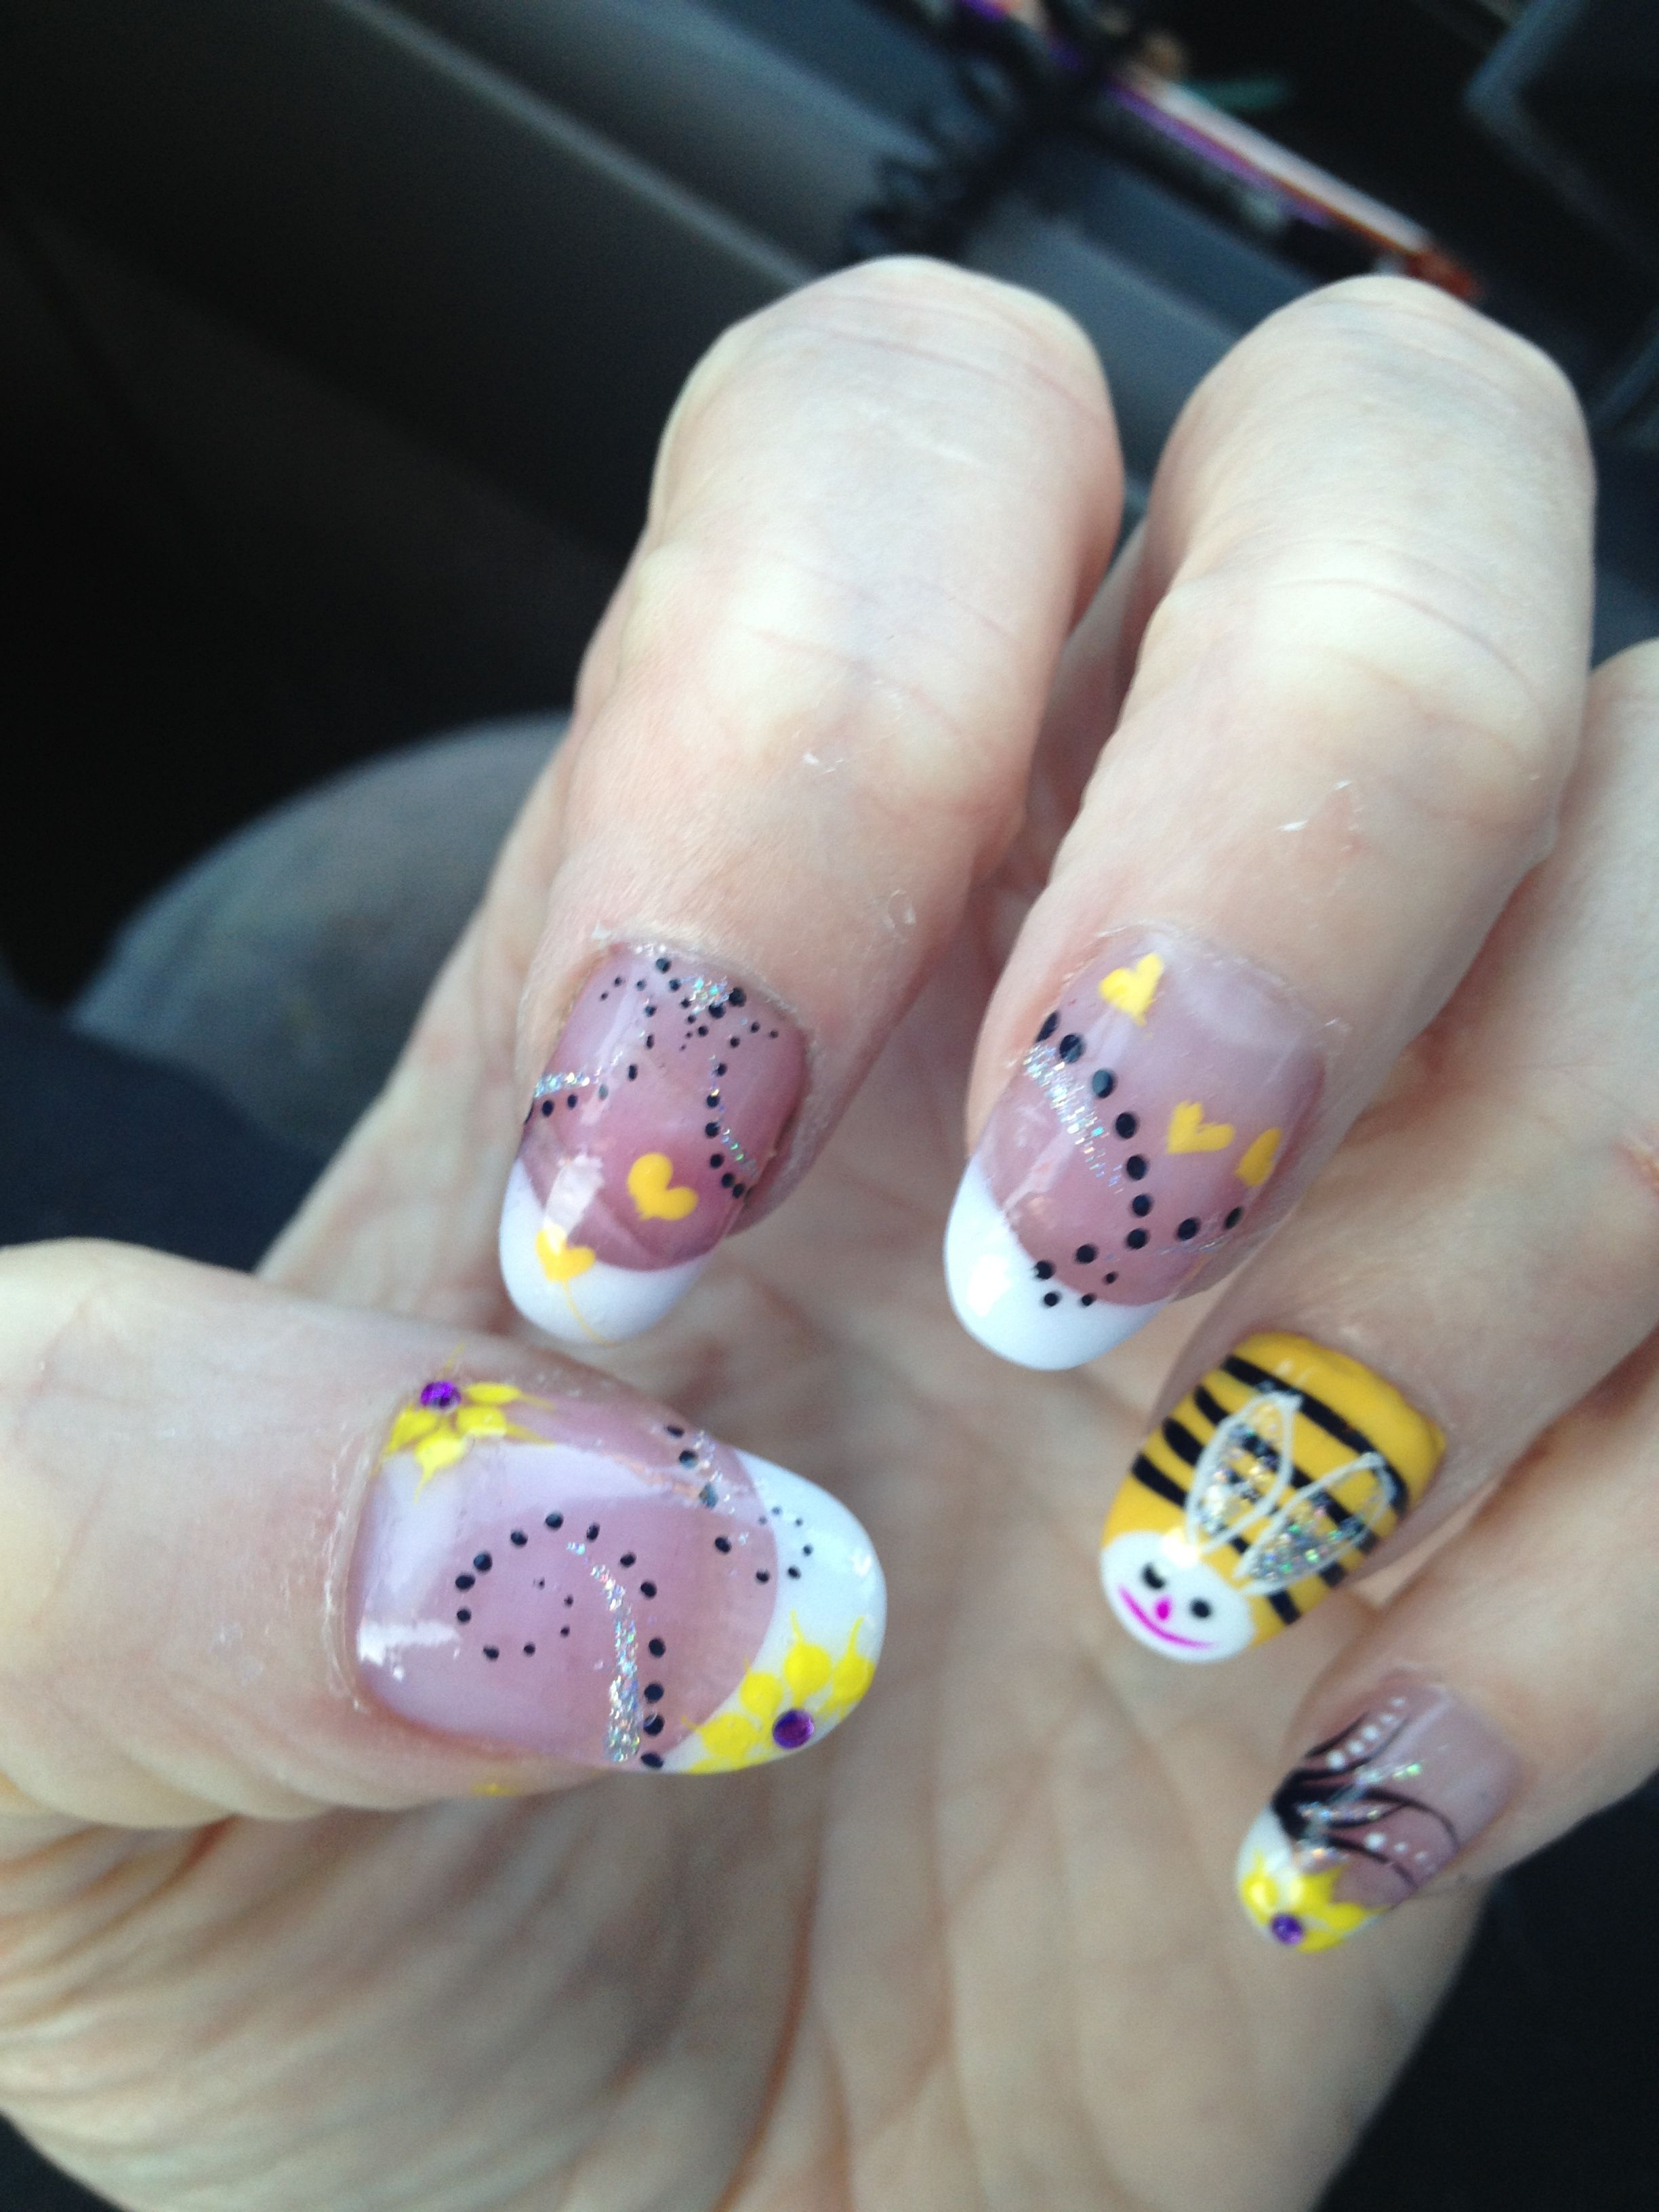 I Love My Bumble Bee Nail Art Nails Pinterest Bumble Bee